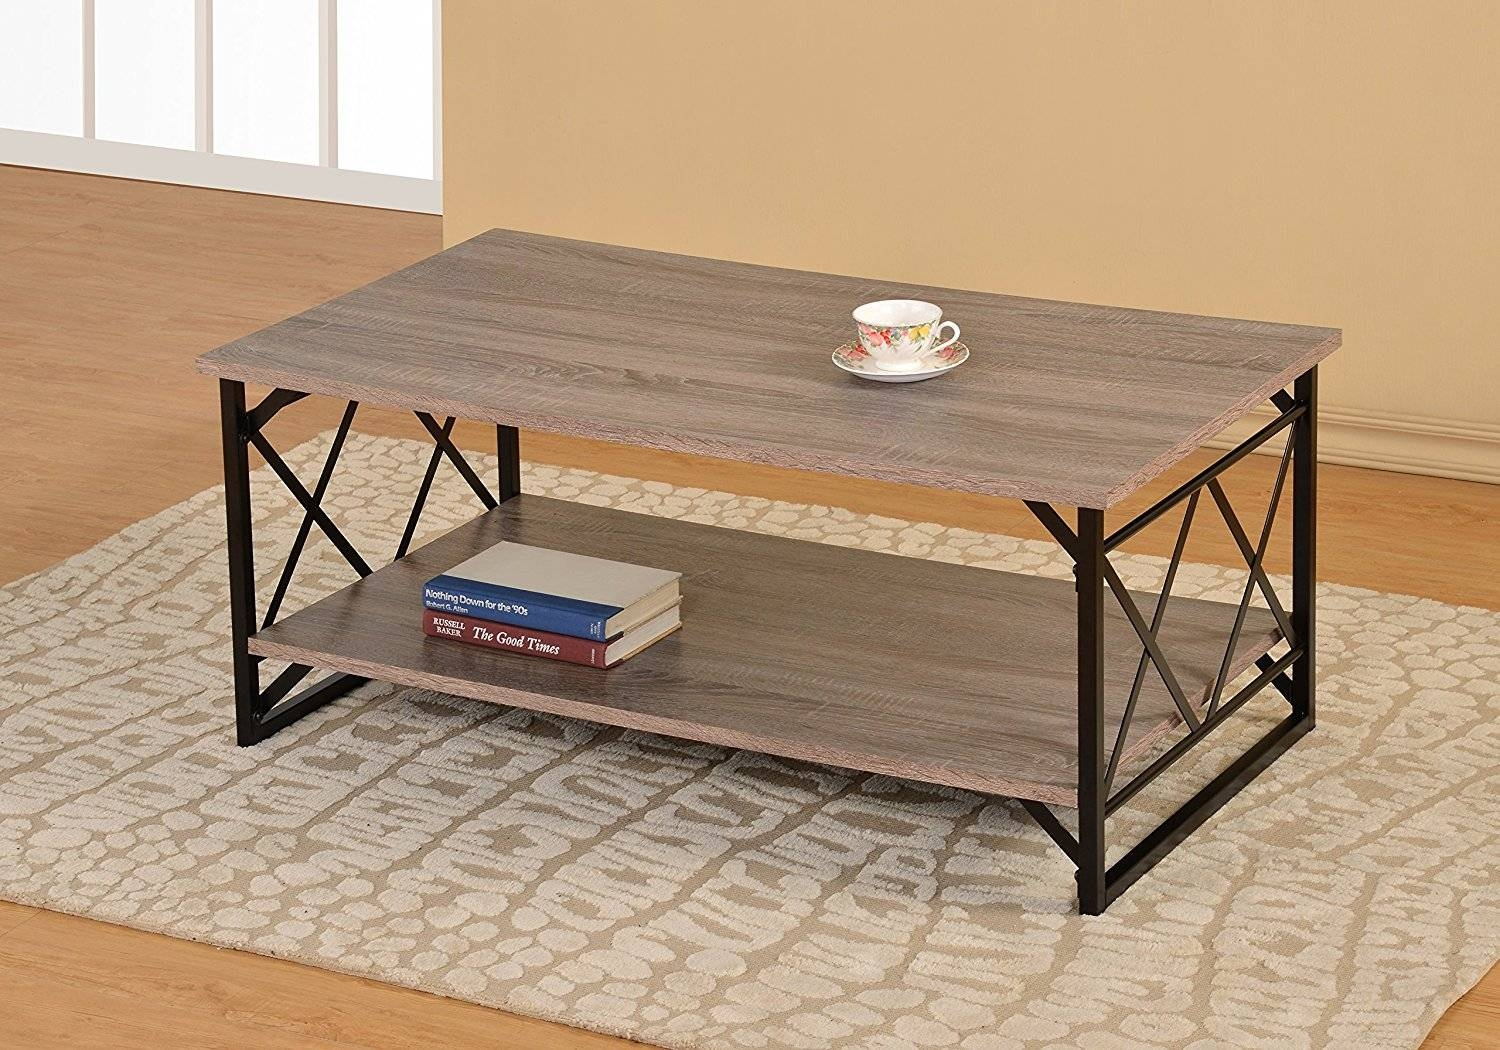 Cheap Coffee Tables Under $100 That Work For Every Style with regard to Cheap Oak Coffee Tables (Image 6 of 30)